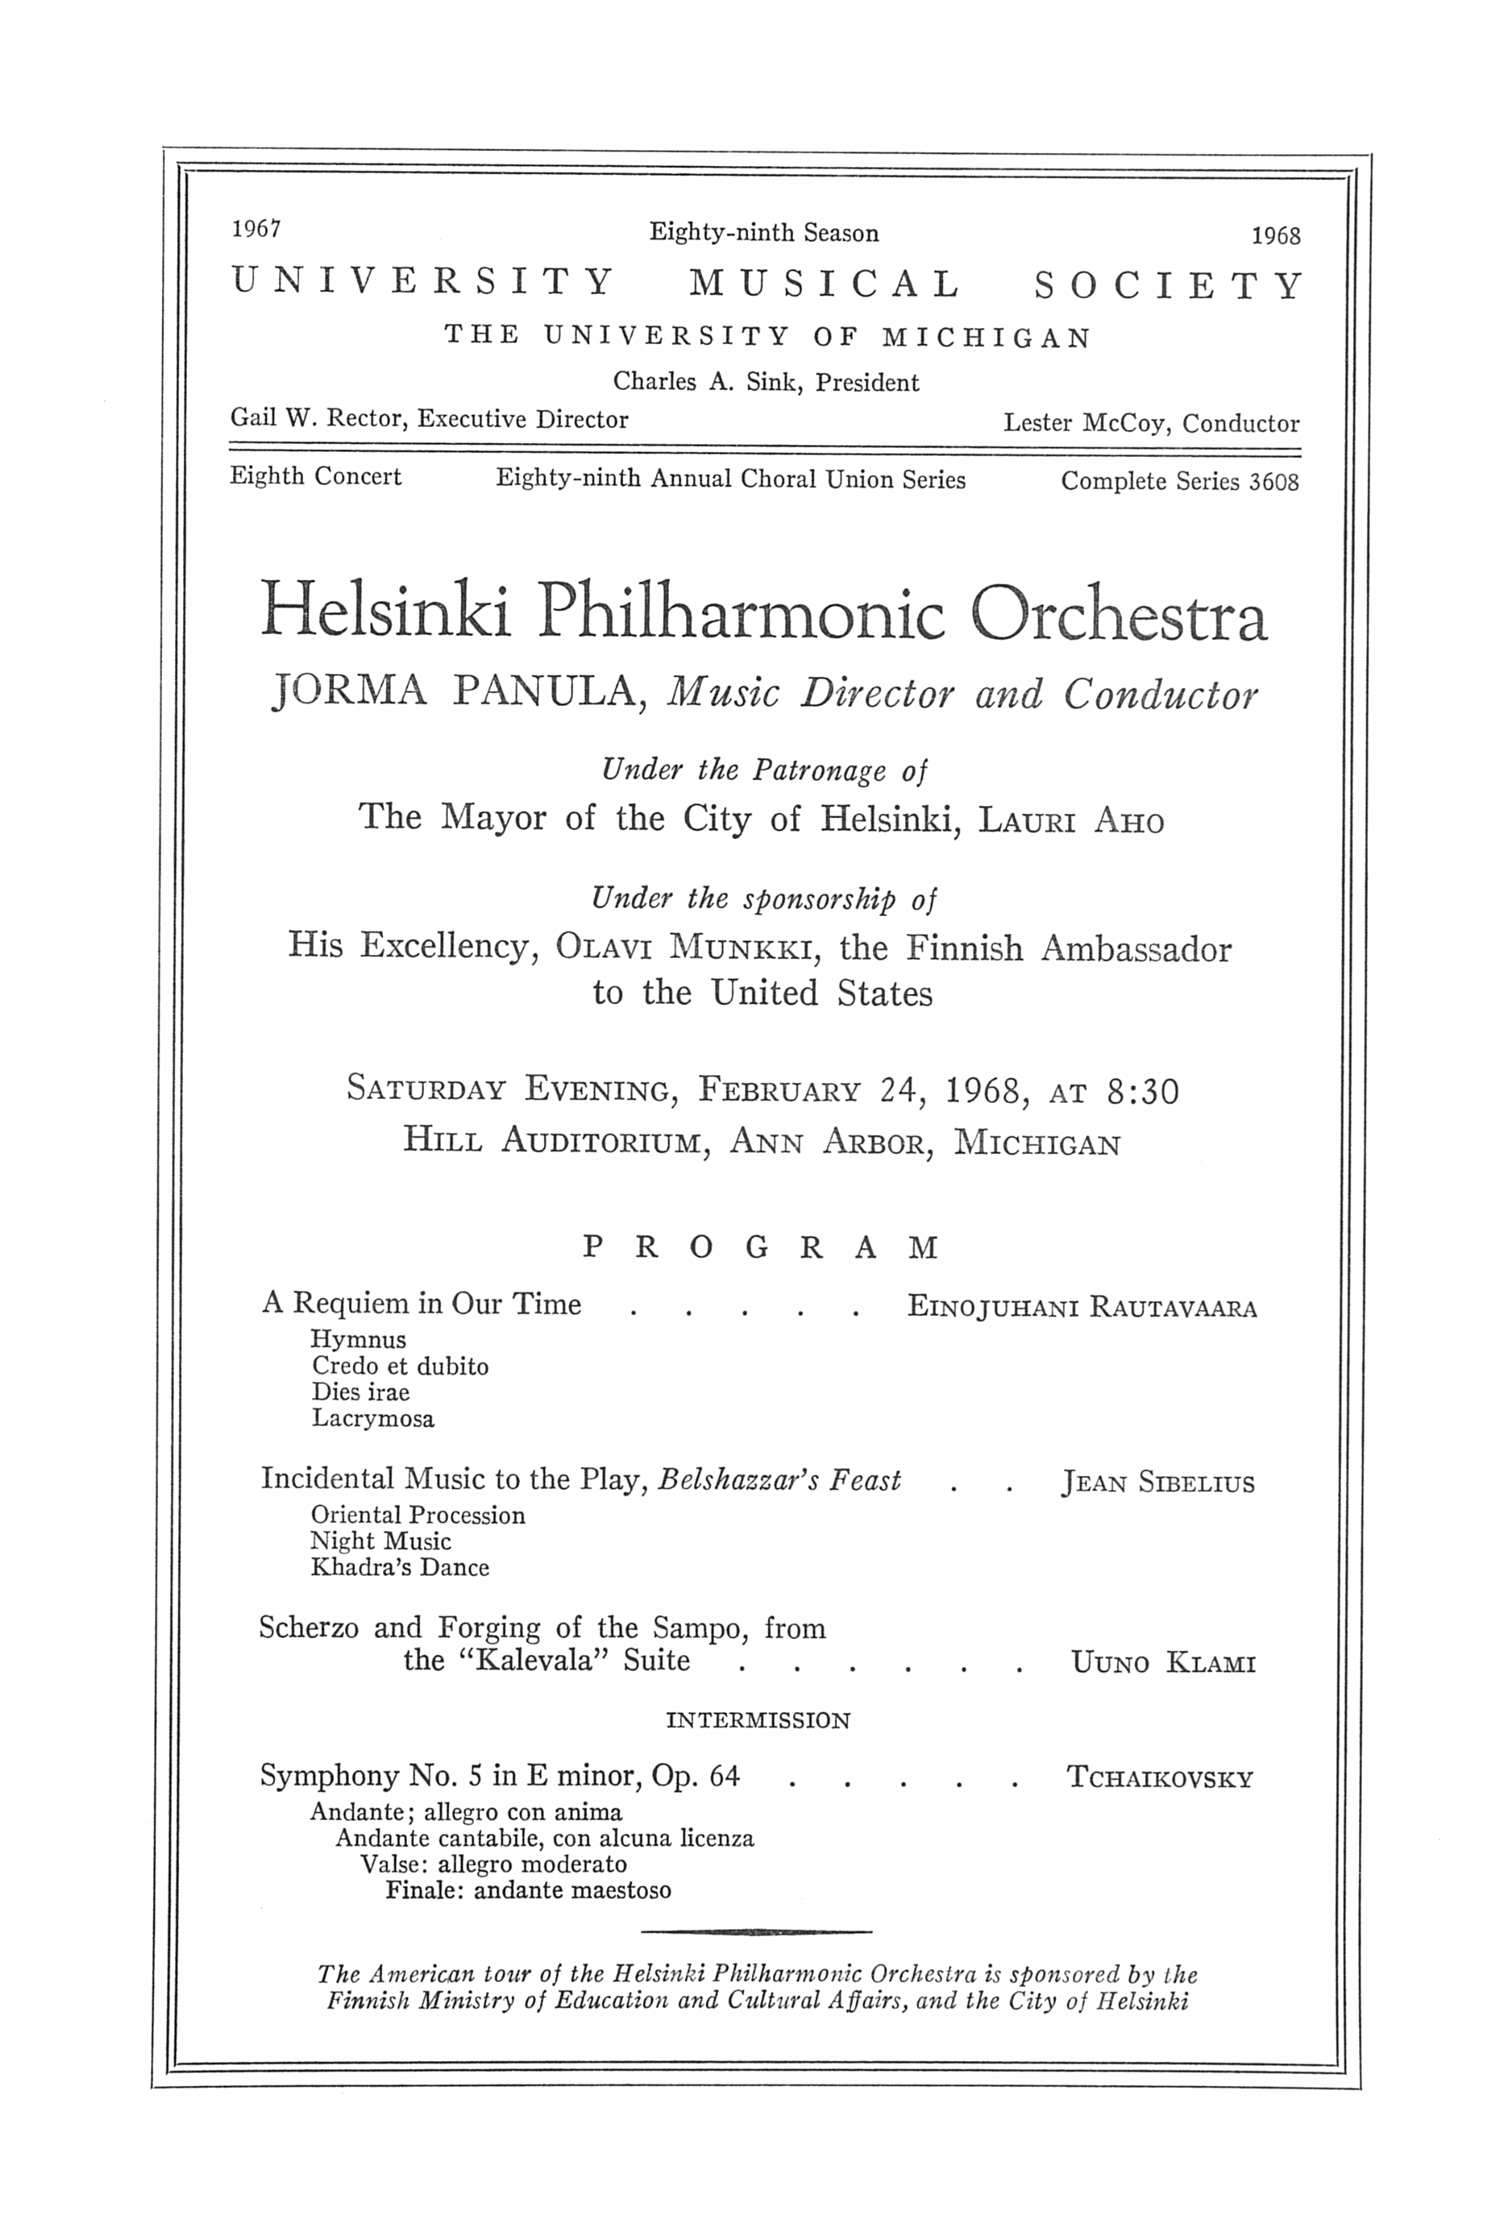 UMS Concert Program, February 24, 1968: Eighty-ninth Annual Choral Union Series -- Helsinki Philharmonic Orchestra image